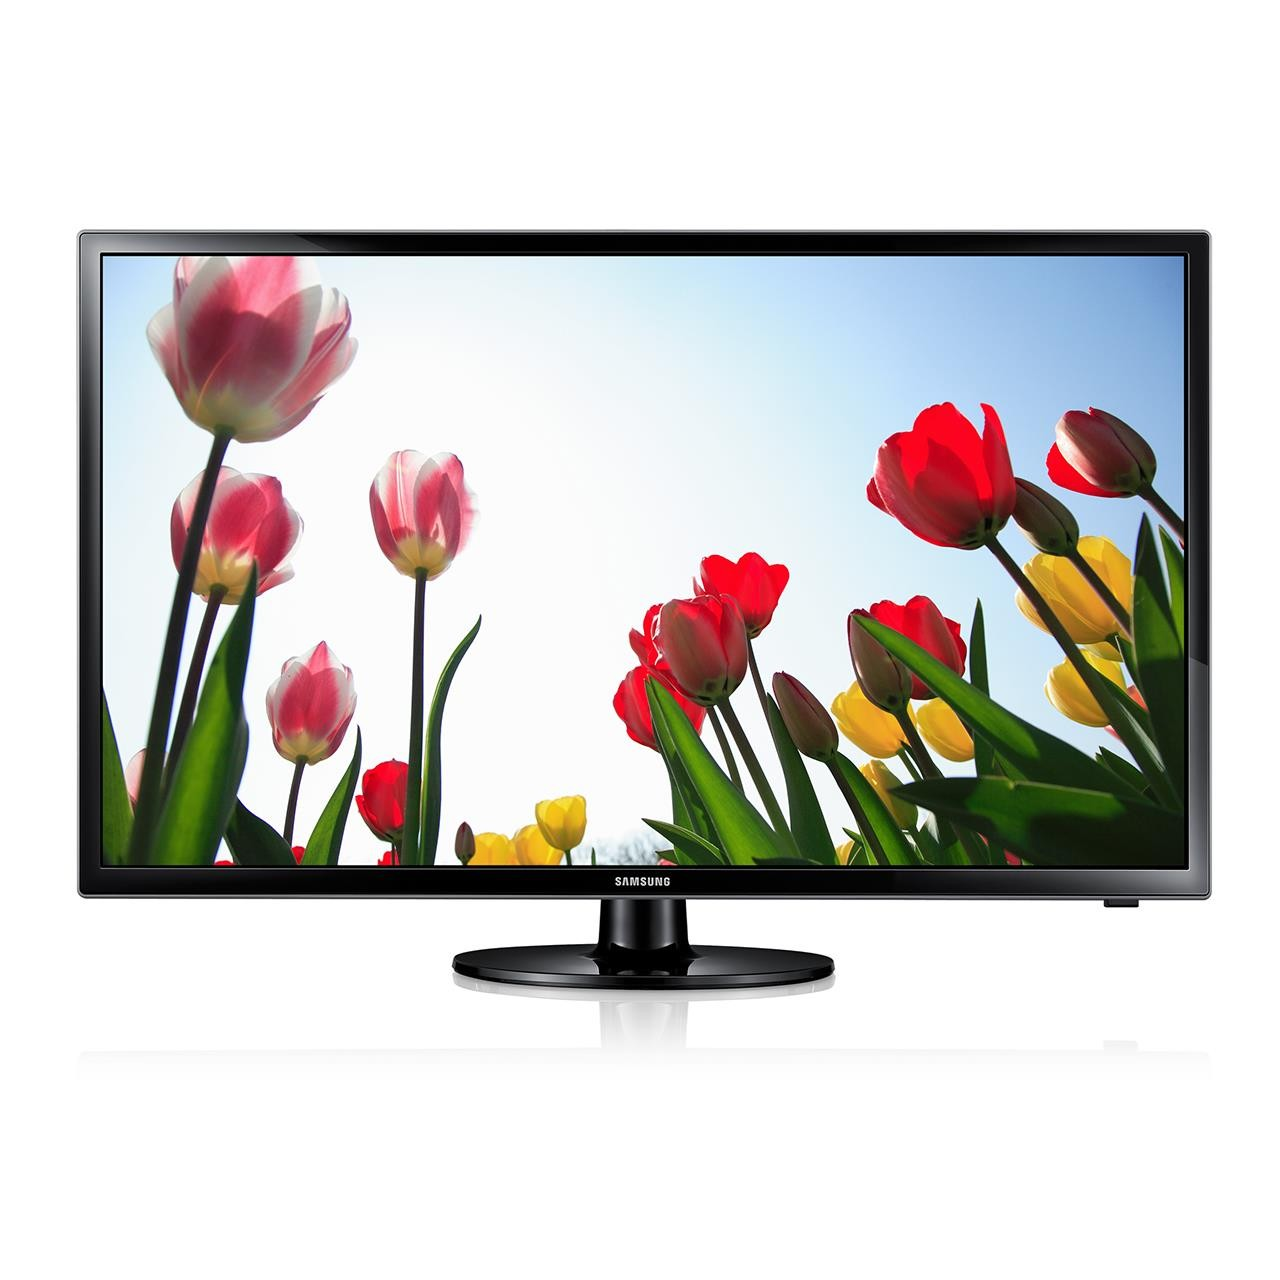 Samsung UE24H4003AWXXH LED TV 24